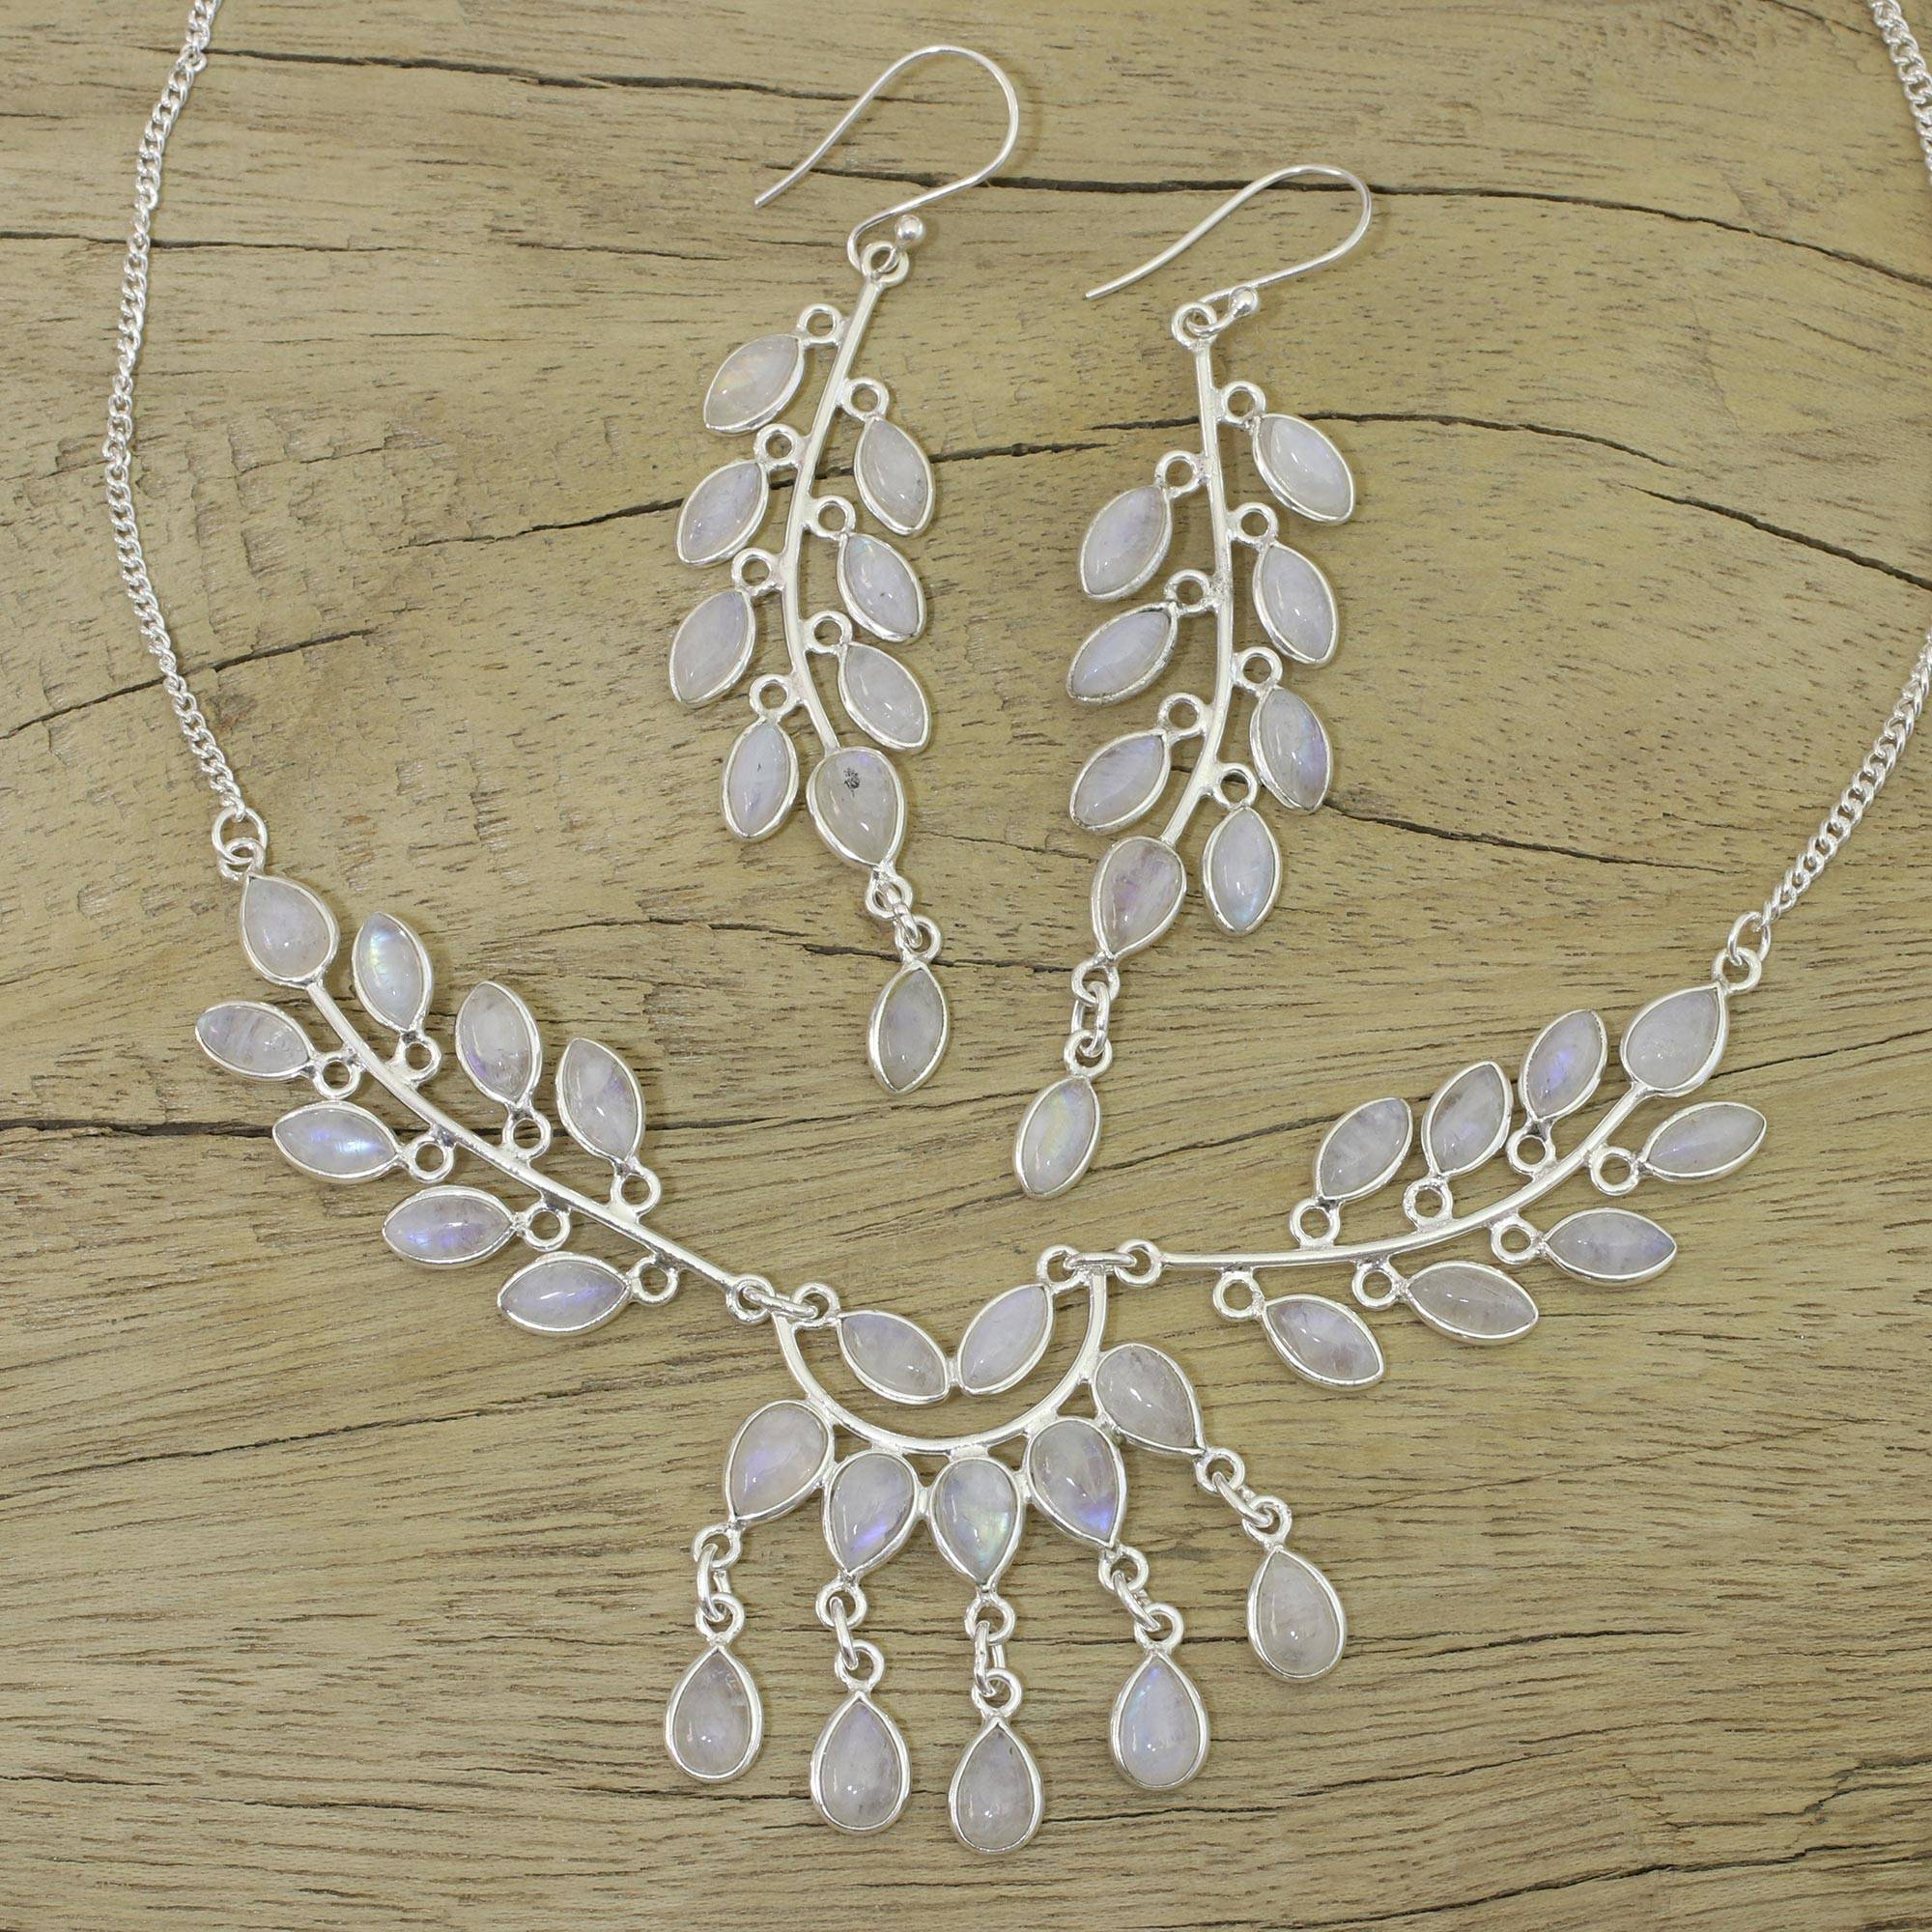 UNICEF Market | Unique Sterling Silver and Moonstone Women's Jewelry Set -  Sweet Romance